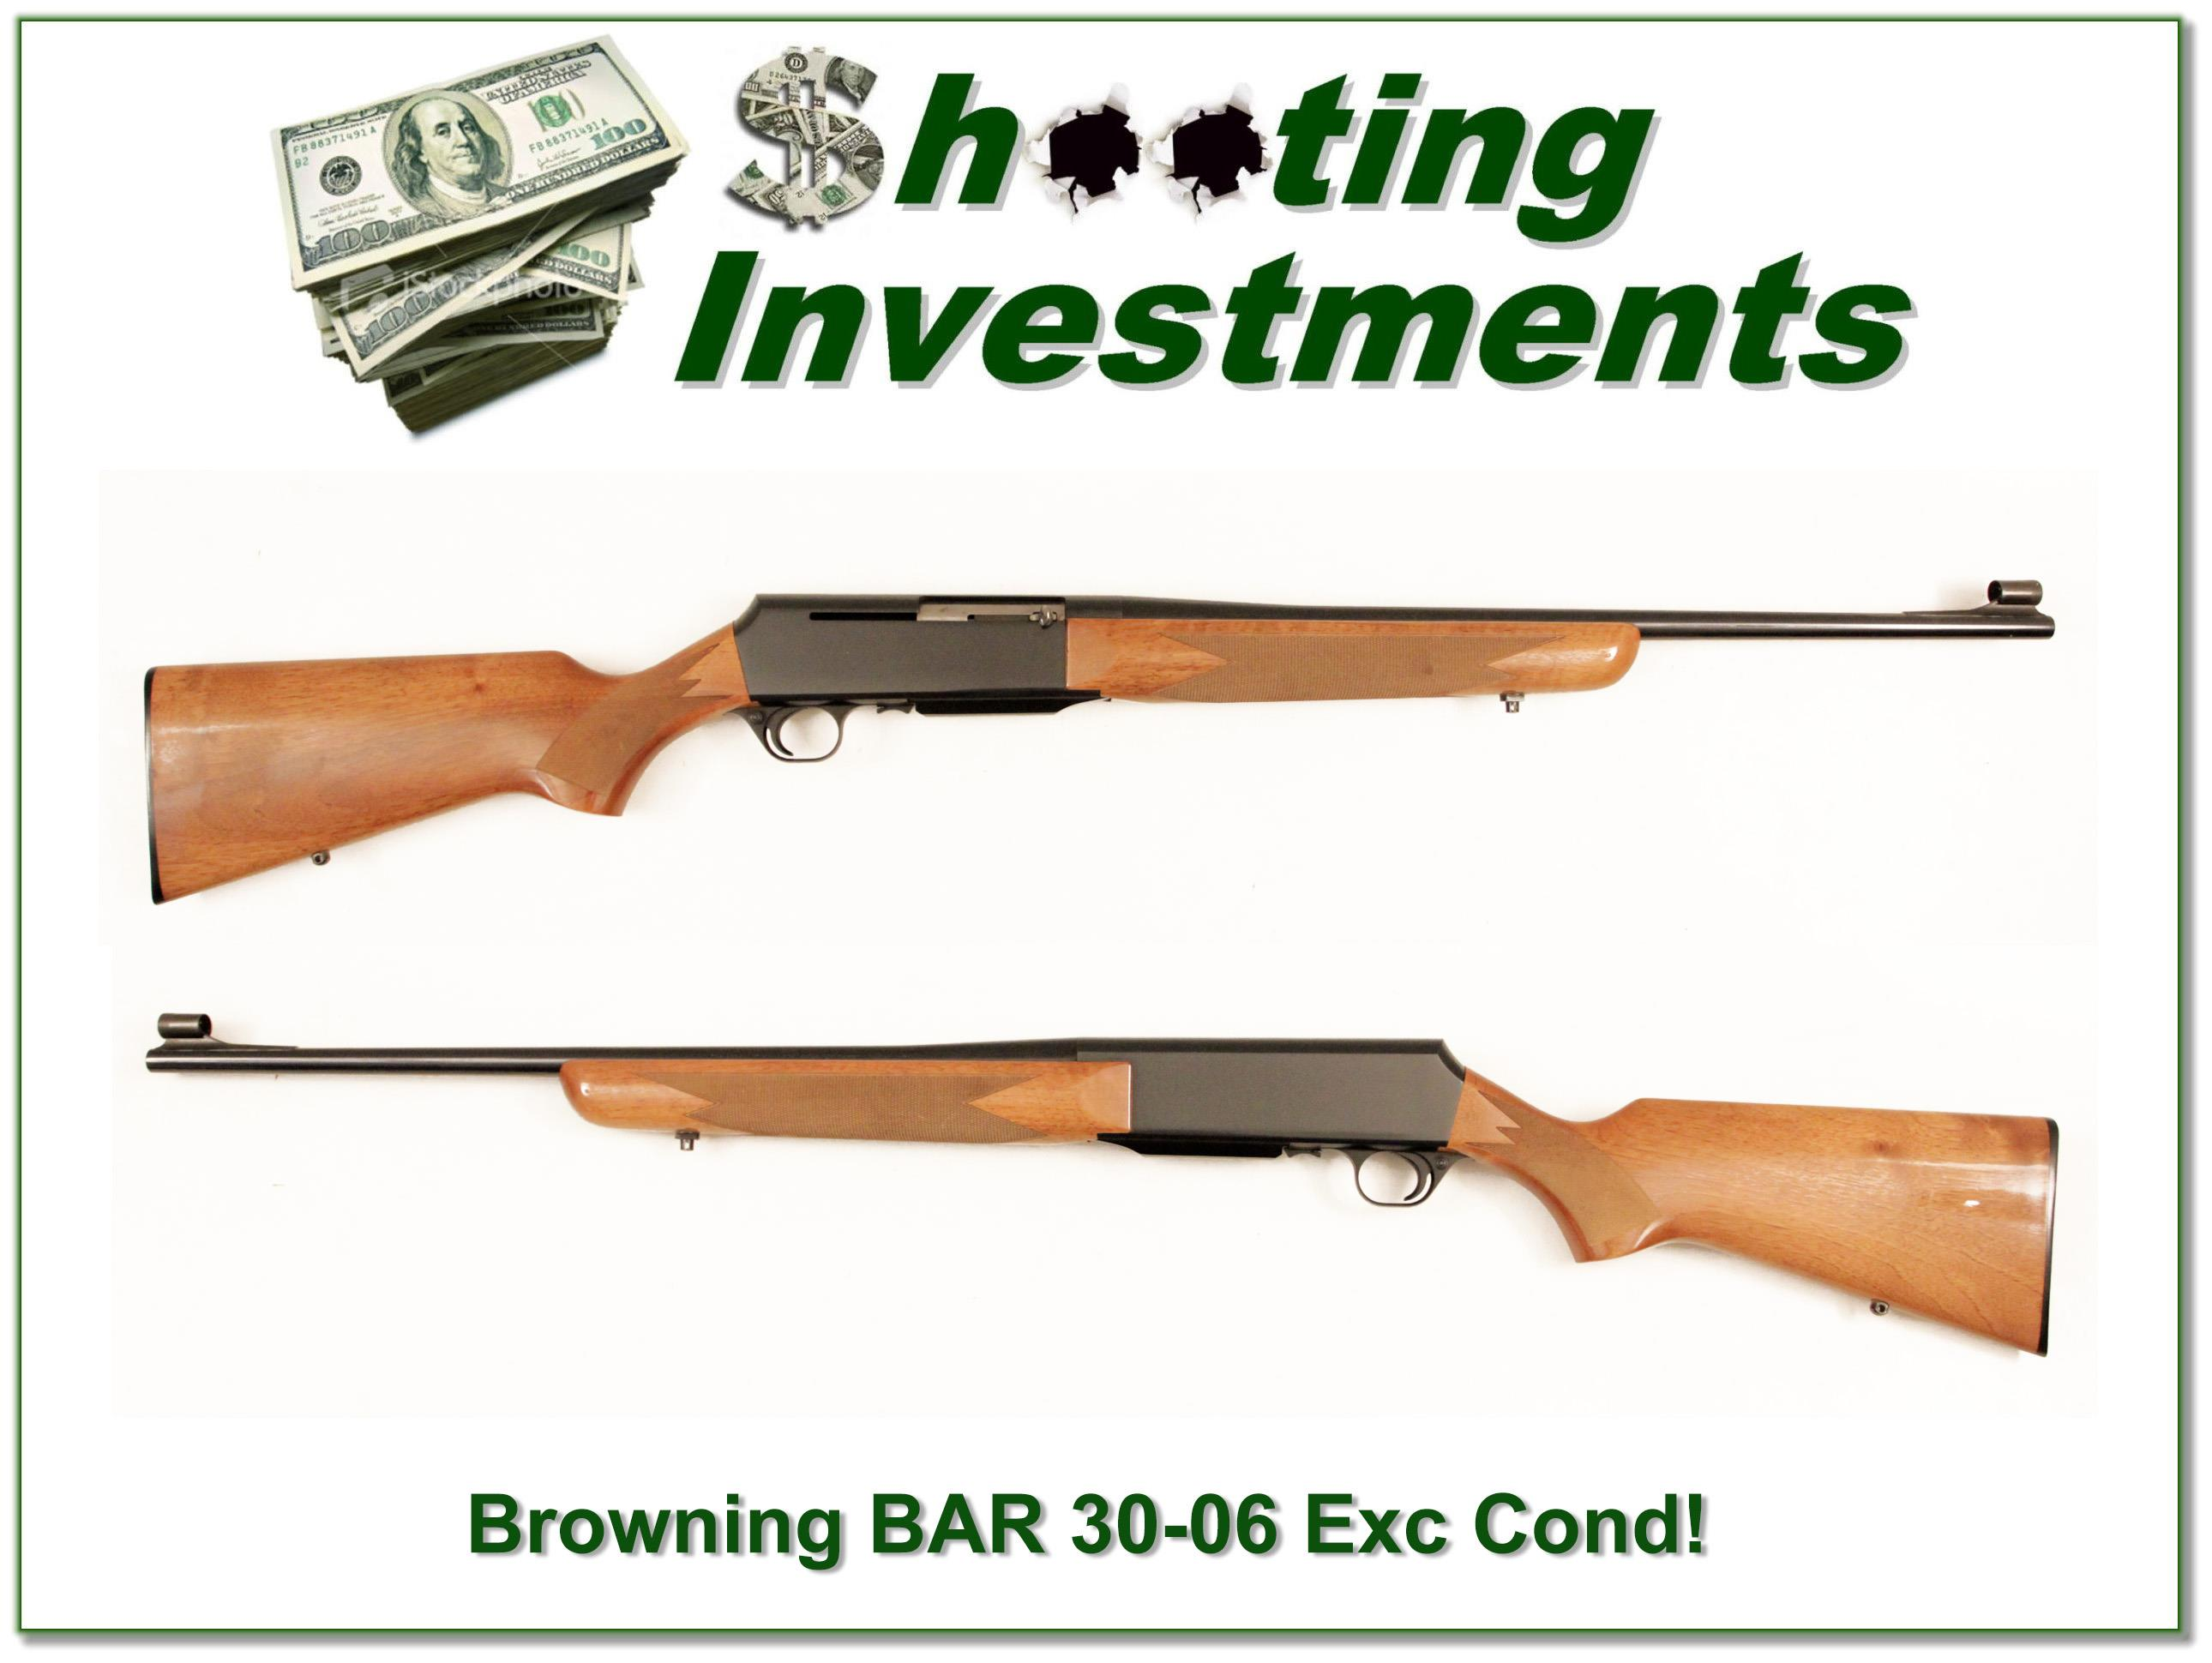 Browning BAR 30-06 Exc Cond Blond Wood!  Guns > Rifles > Browning Rifles > Semi Auto > Hunting